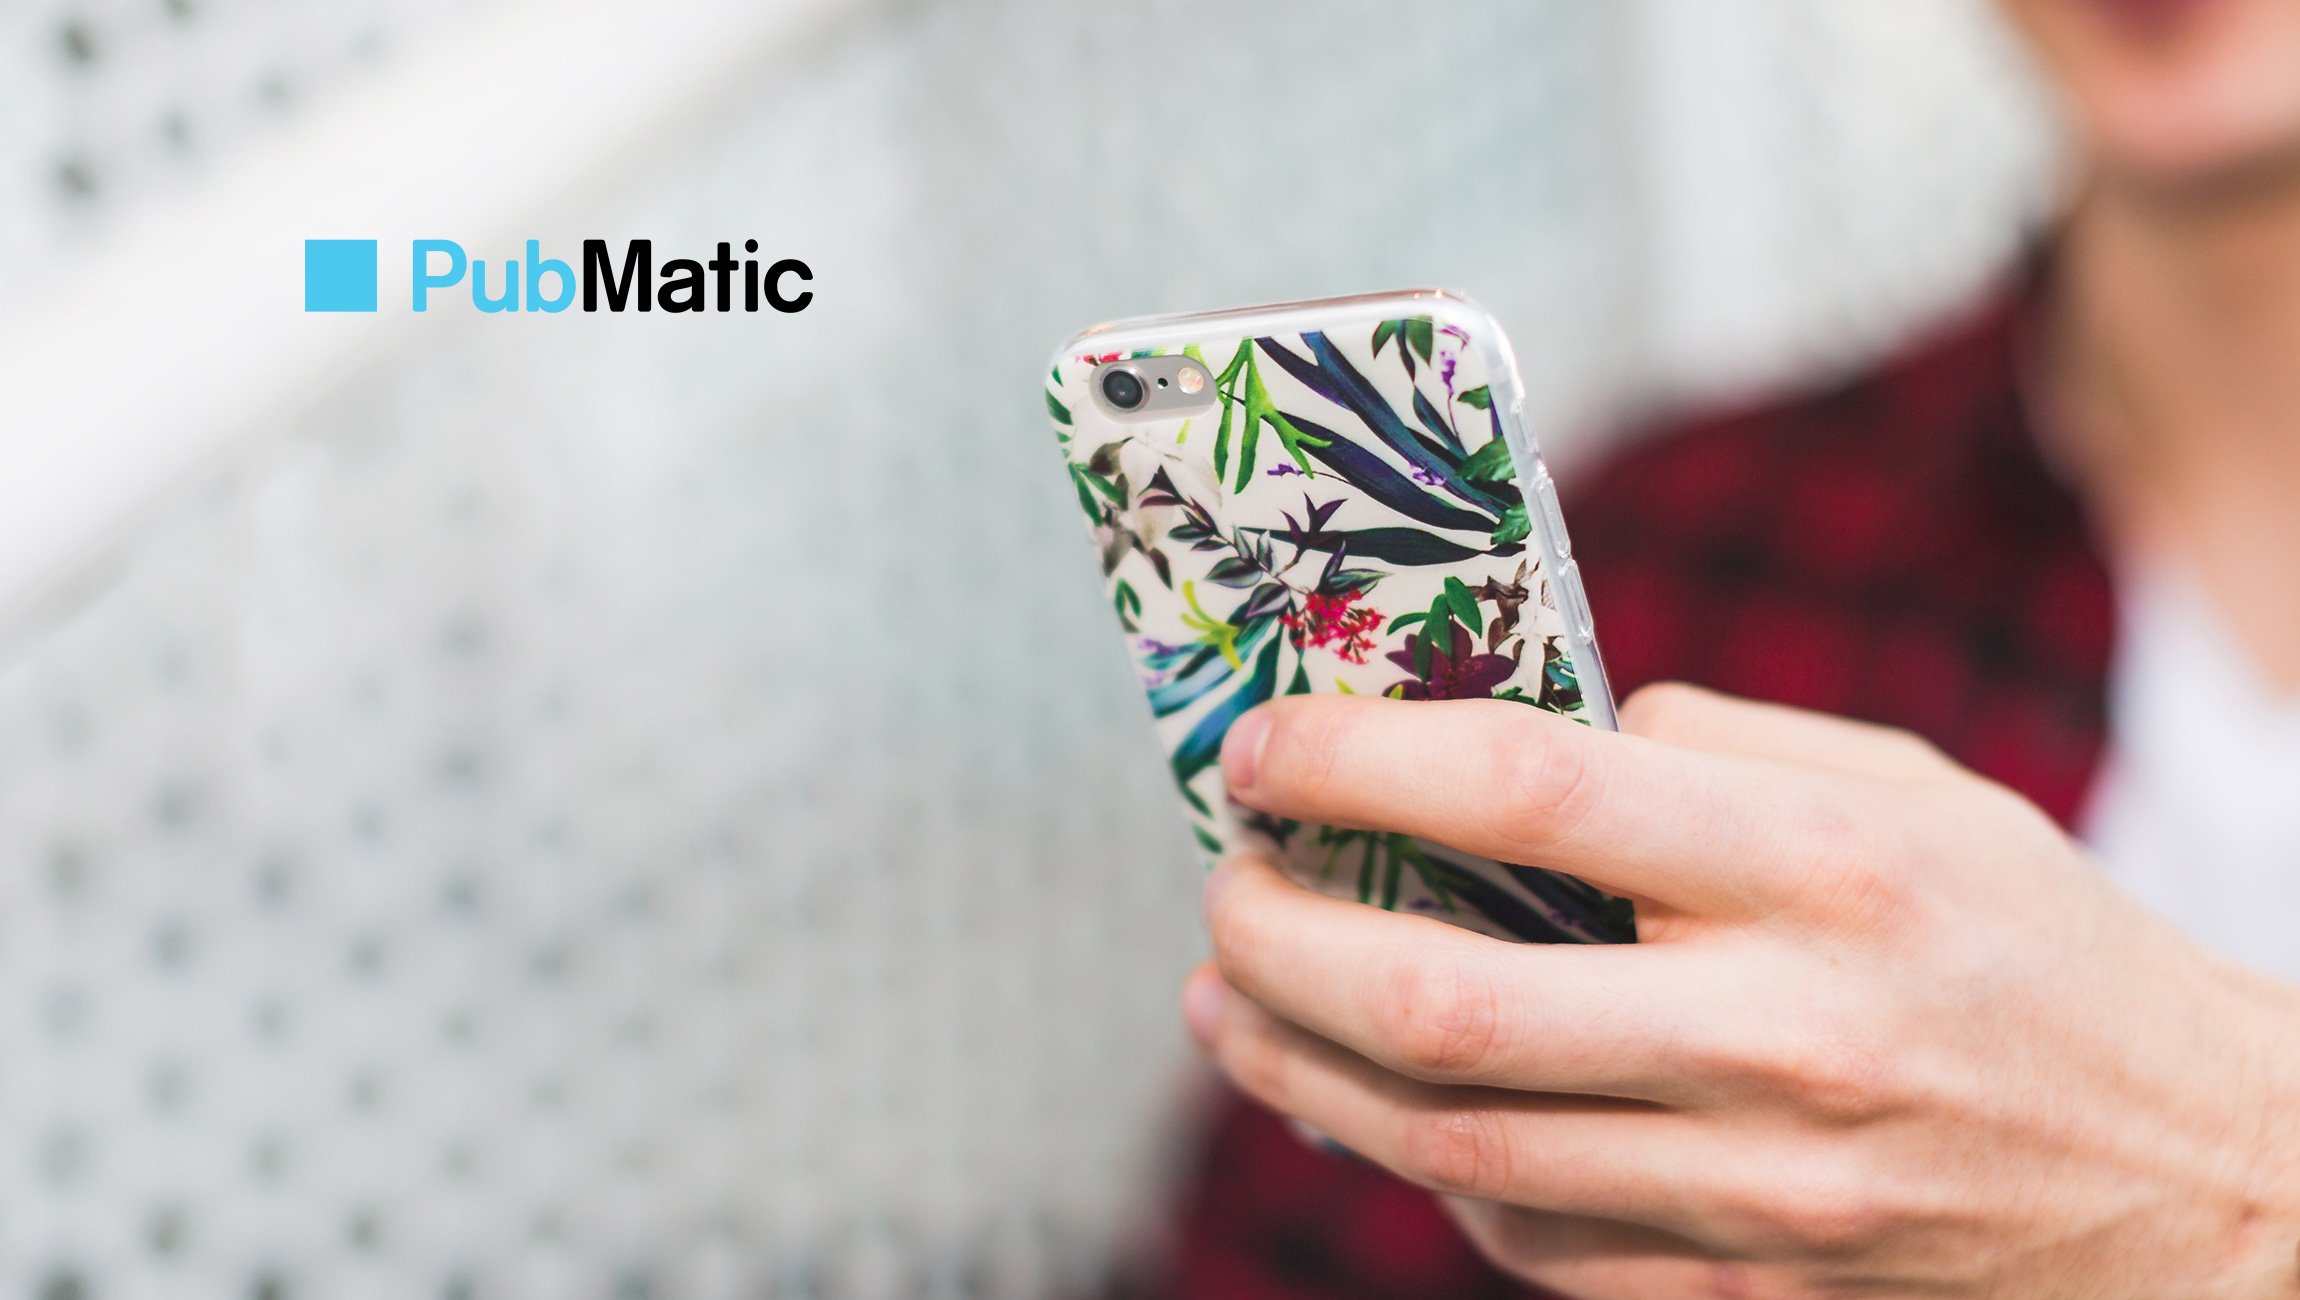 New Independent Research Study Uncovers Why Buyers Are Embracing Programmatic In-App Advertising